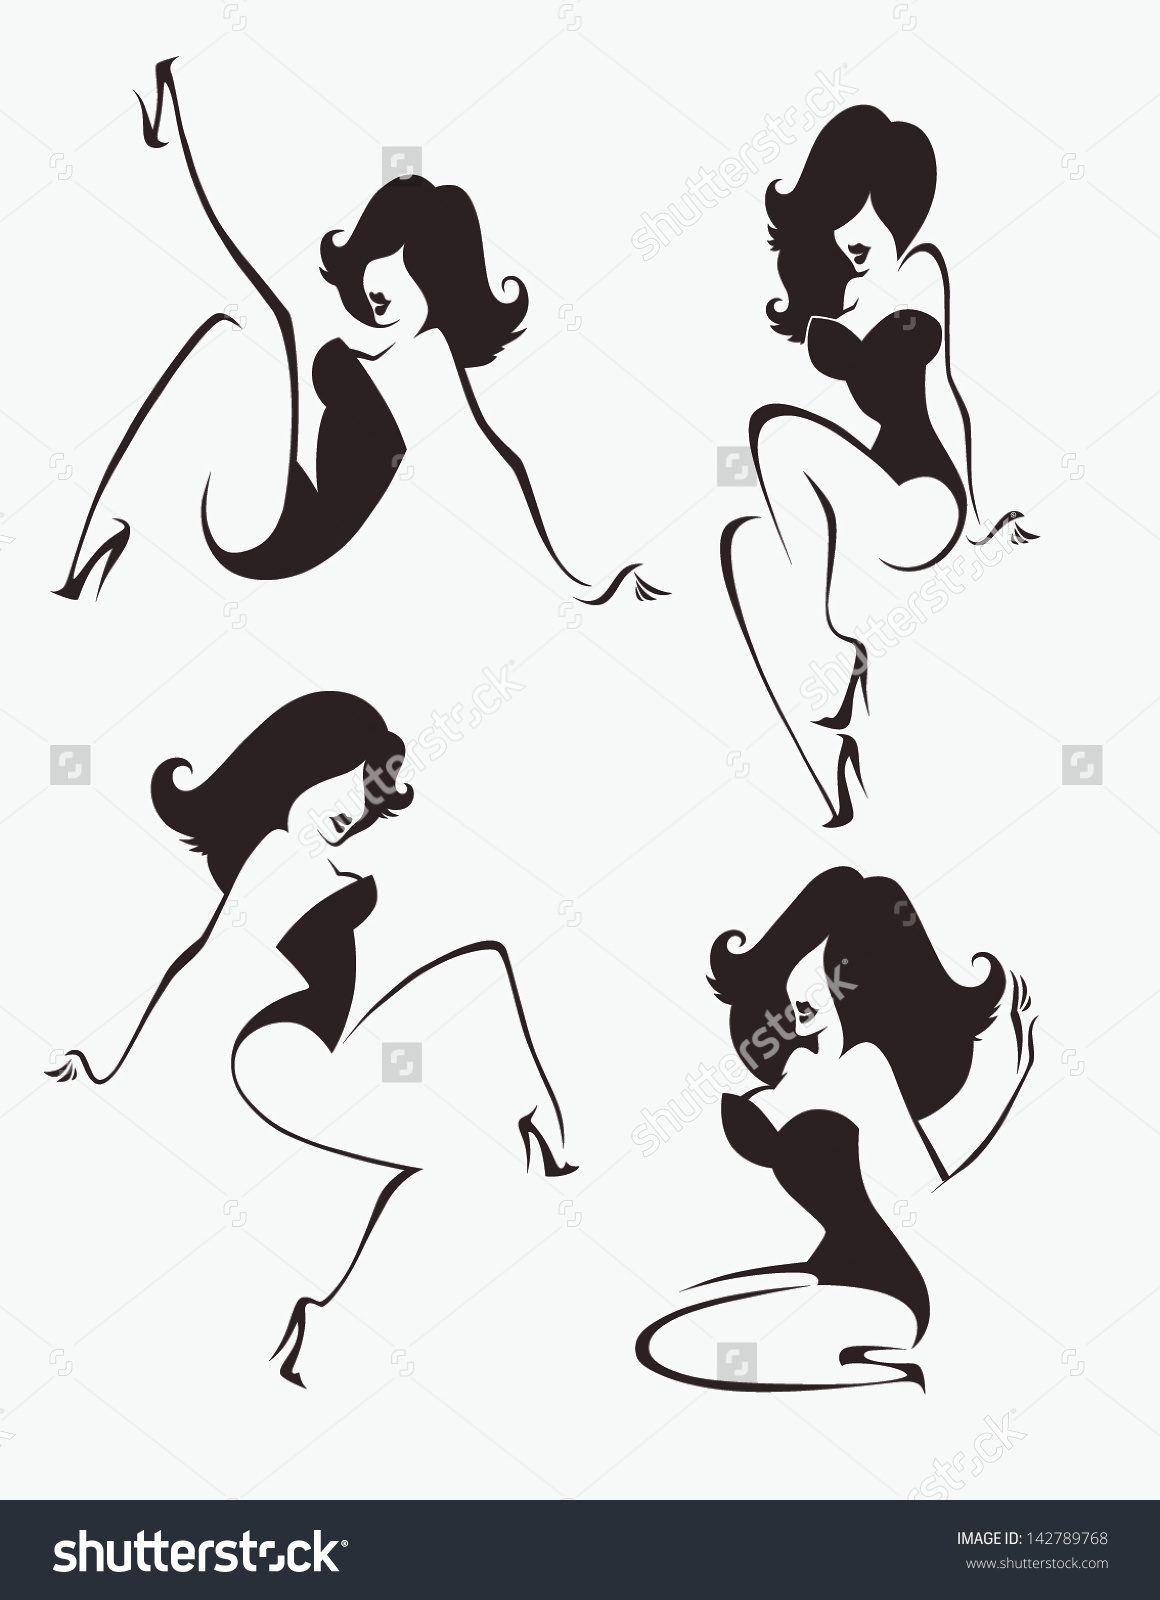 pin up girls clip art clipart panda free clipart images rh clipartpanda com vintage pin up girl clipart free Pin Up Girl Gum Clip Art